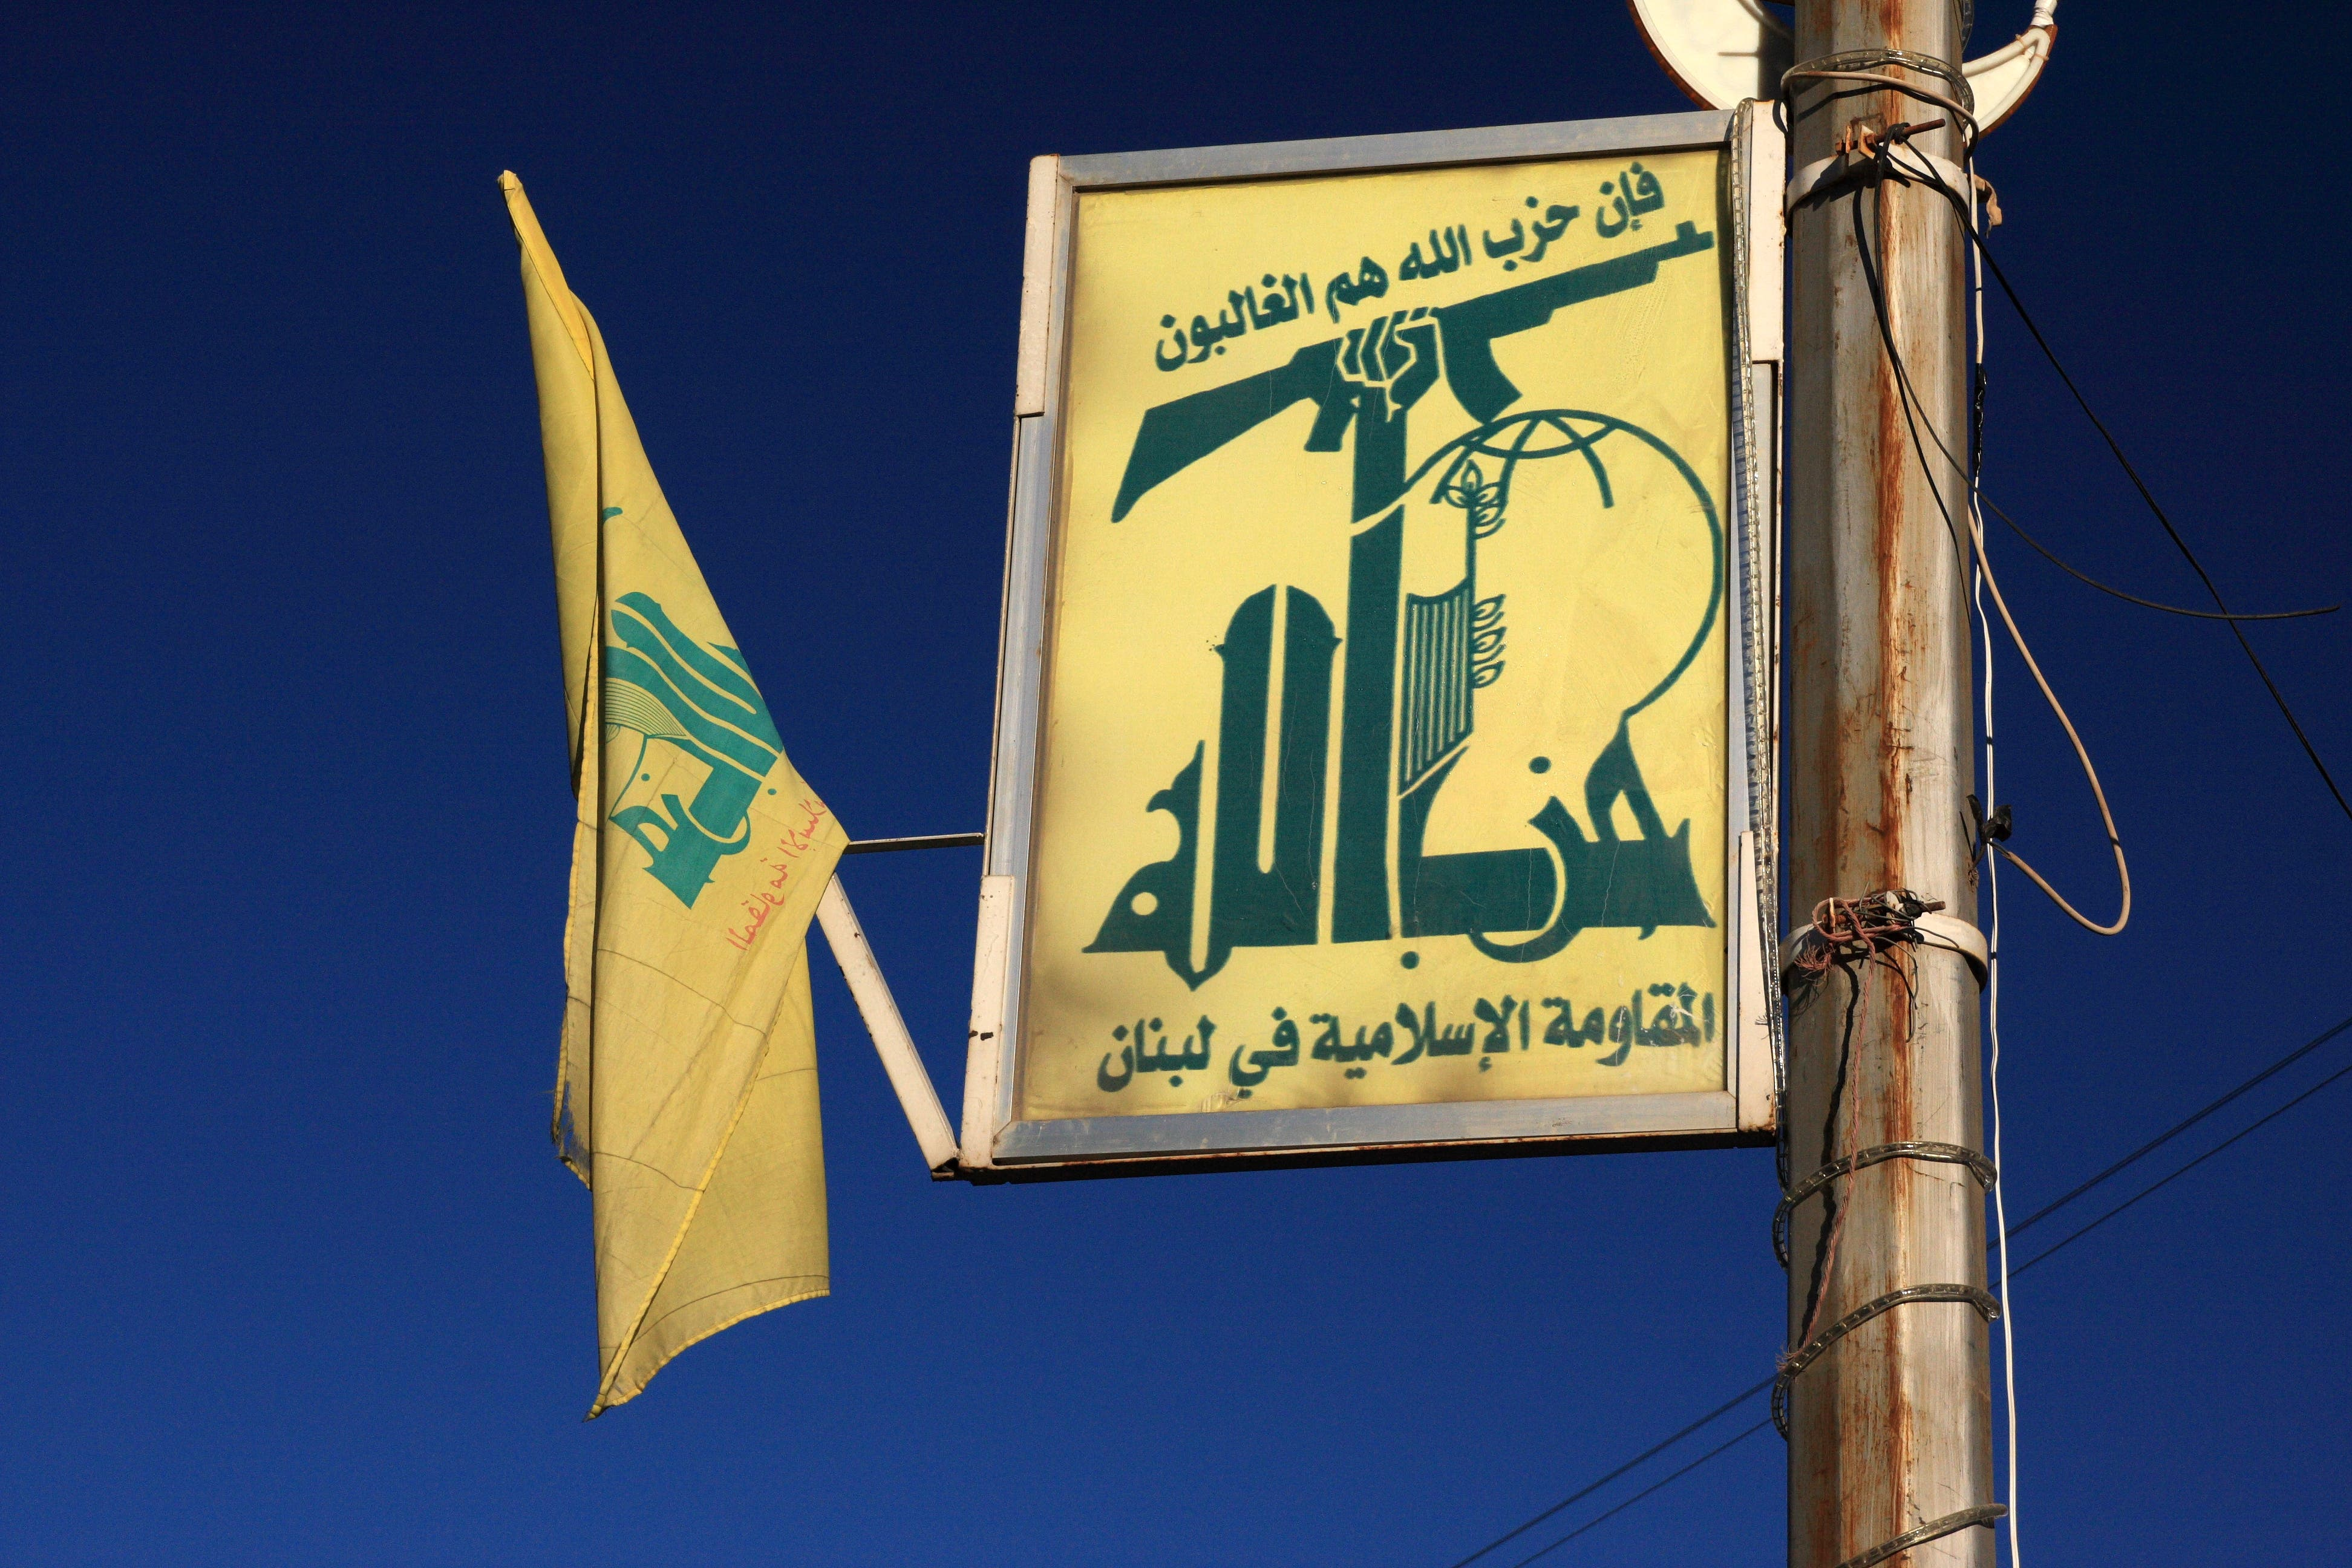 Lebanese President Michel Suleiman on Wednesday condemned the assassination of Hezbollah official Hassan Laqqis, which he says was a